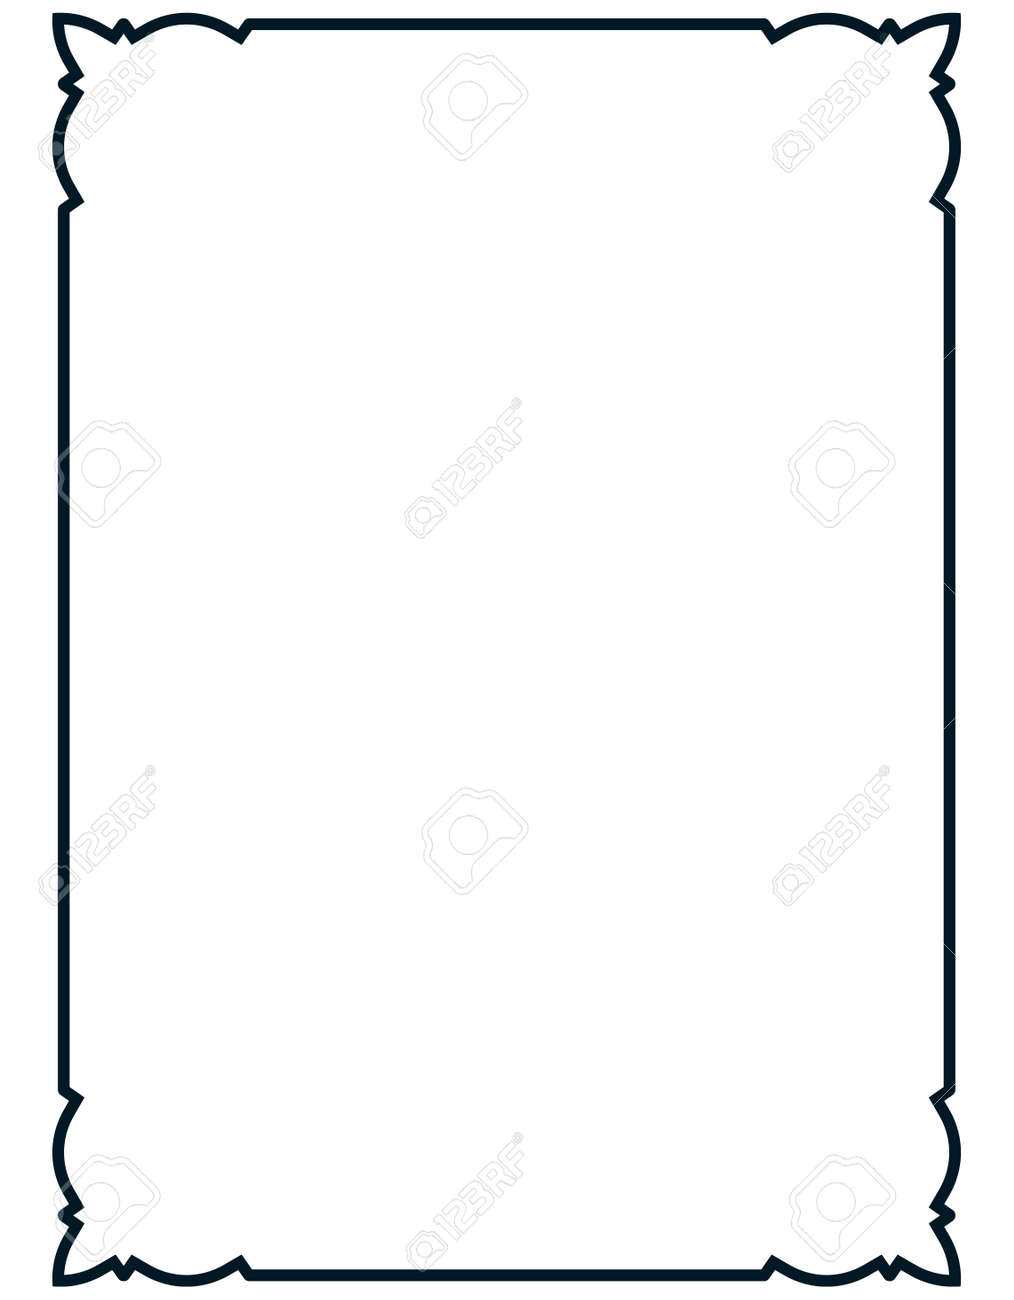 frame vector vintage menu page elegant border royalty free rh 123rf com vector frame light box vector frame borders